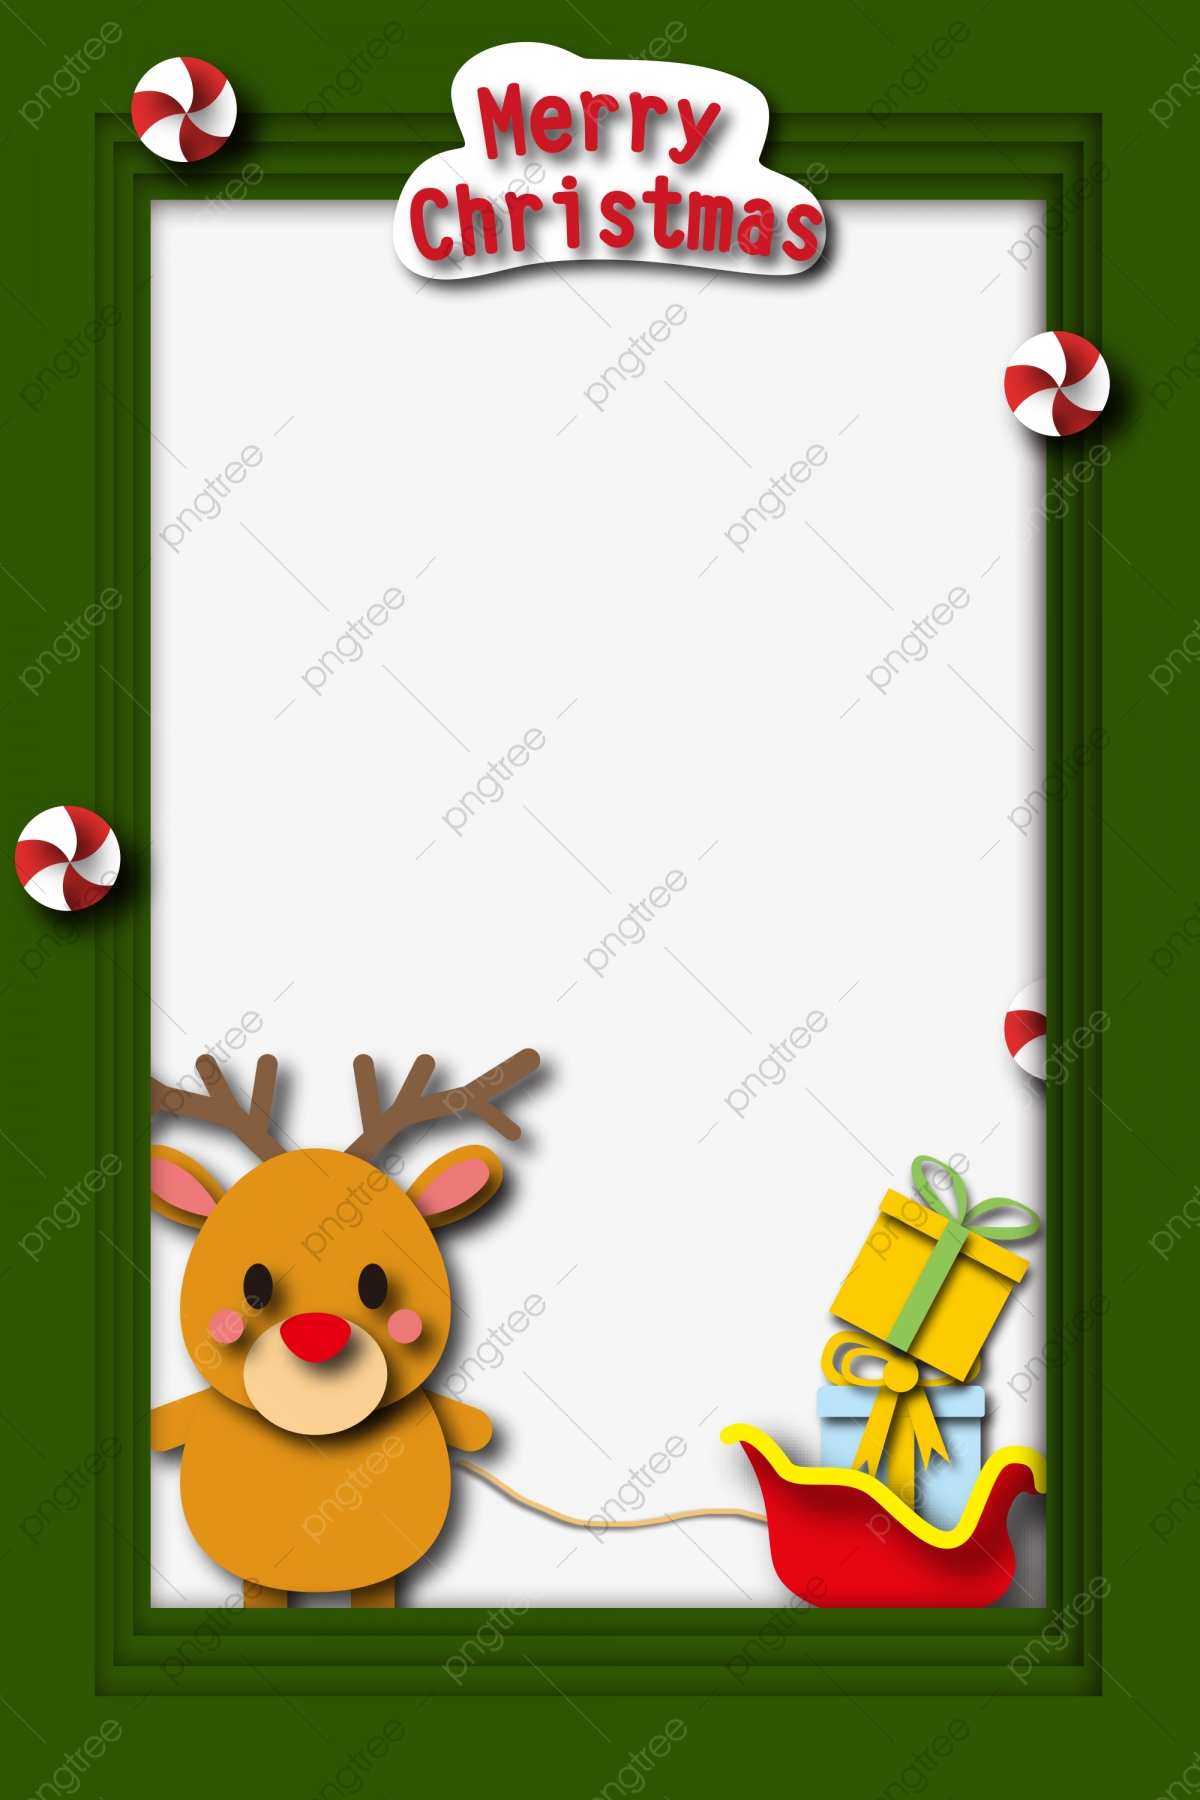 Christmas Border Illustration Yellow